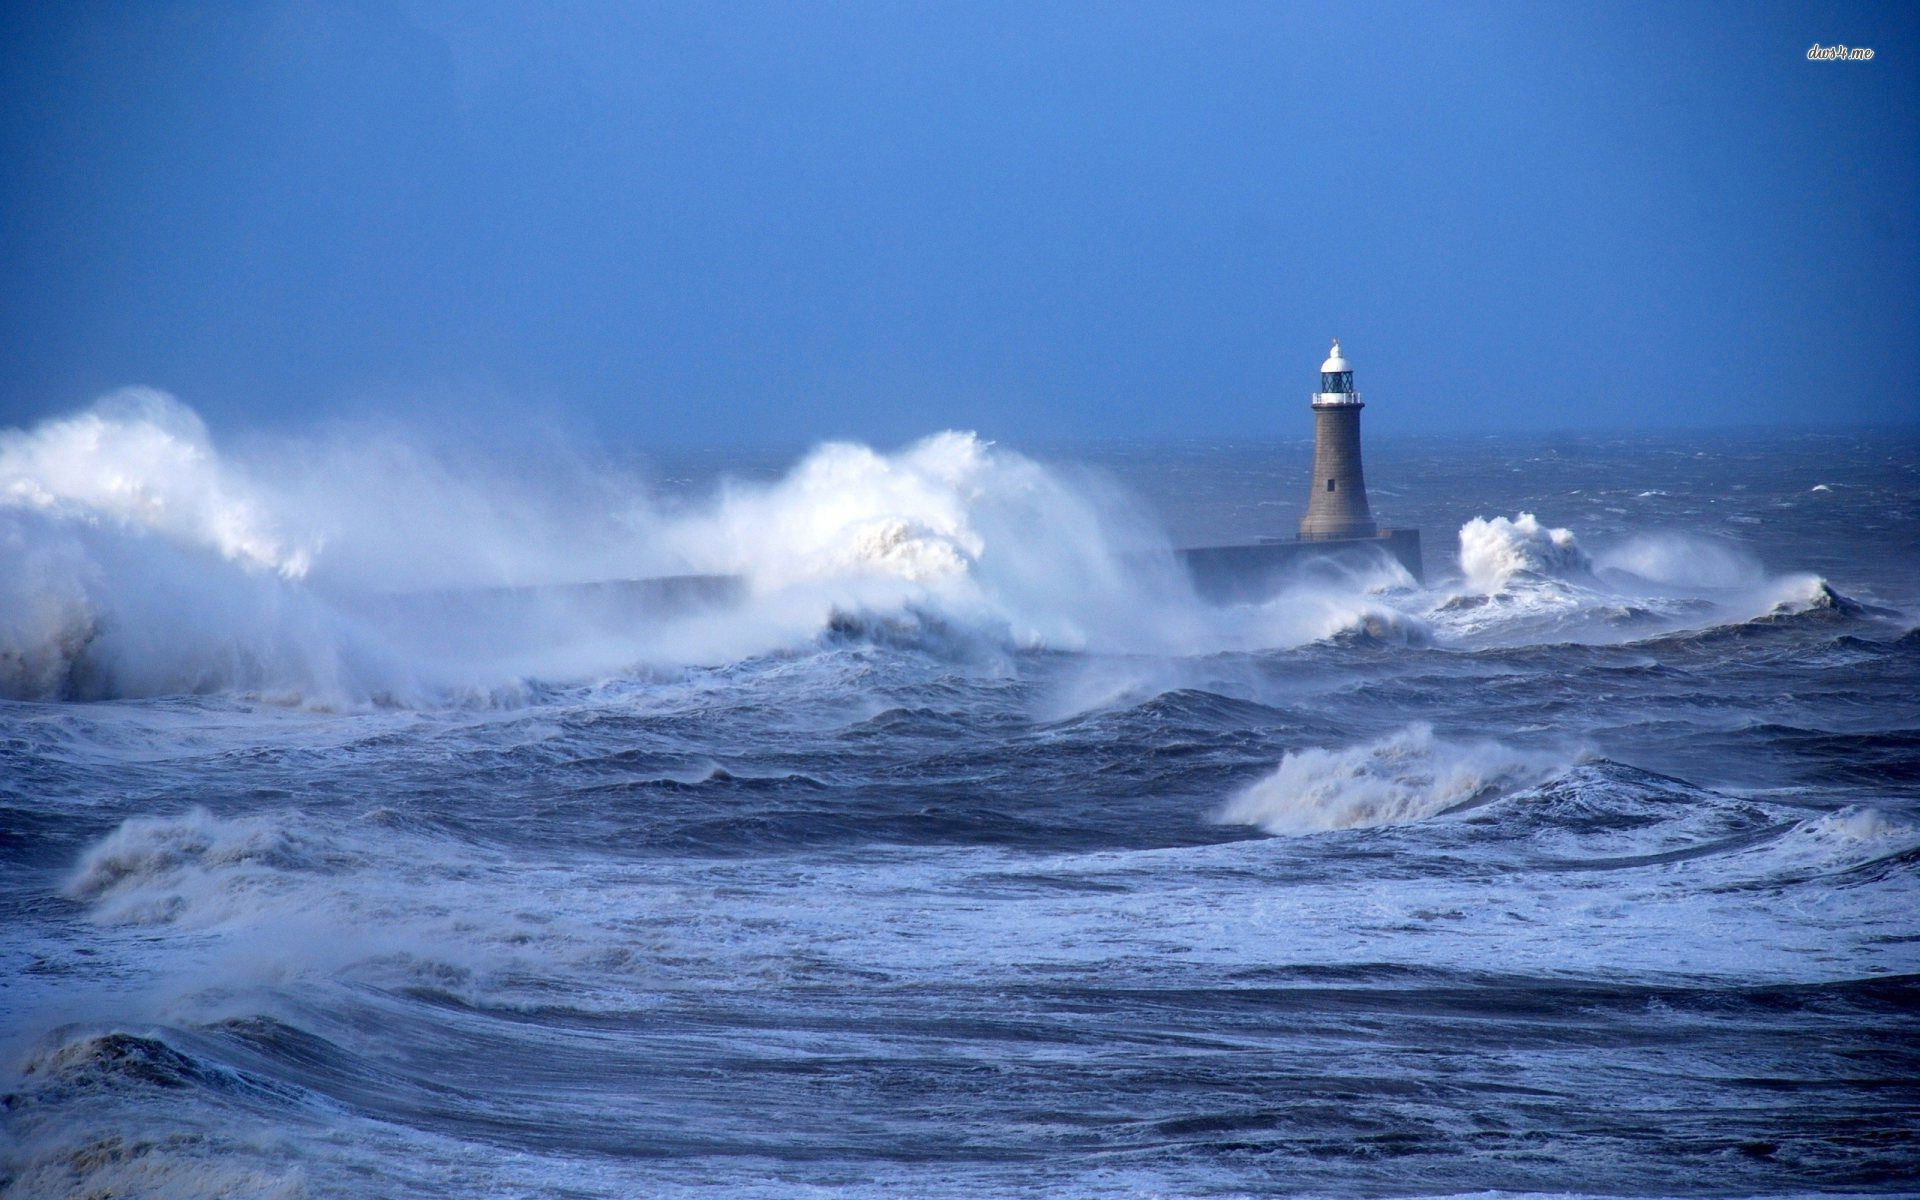 Lighthouse Storm Images Click Wallpapers Waves Wallpaper Ocean Waves Photography Ocean Waves